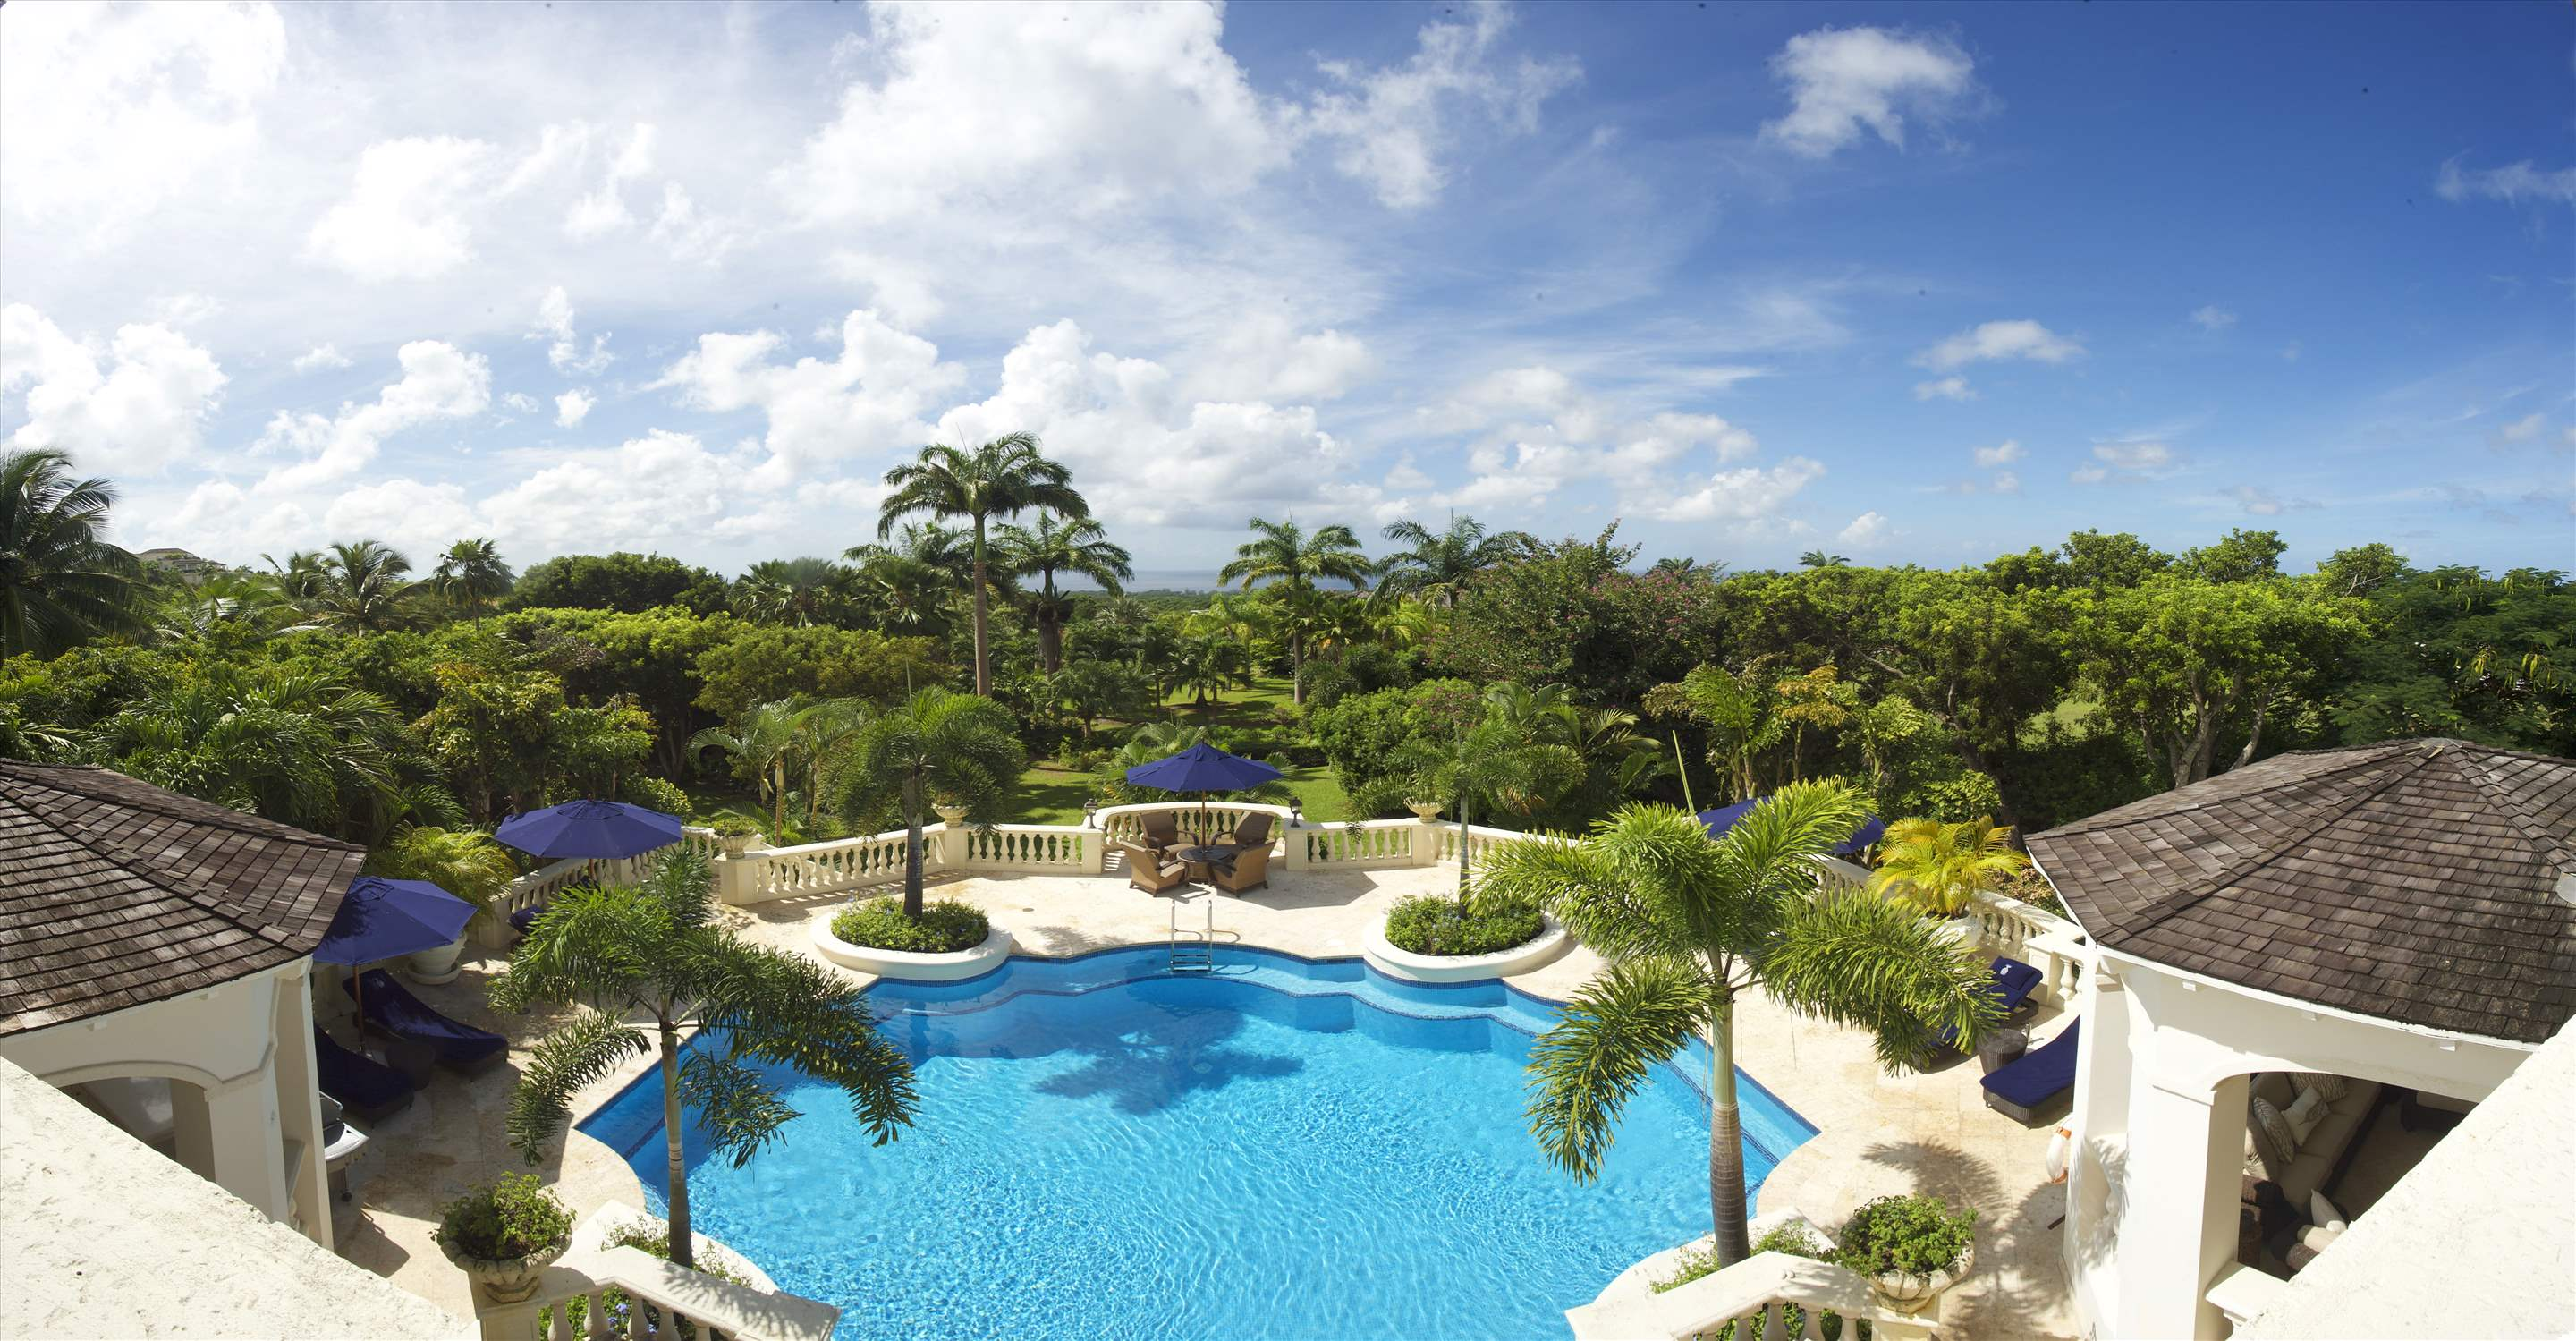 Plantation House, Royal Westmoreland, 6 bedroom, 6 bedroom villa in St. James & West Coast, Barbados Photo #24